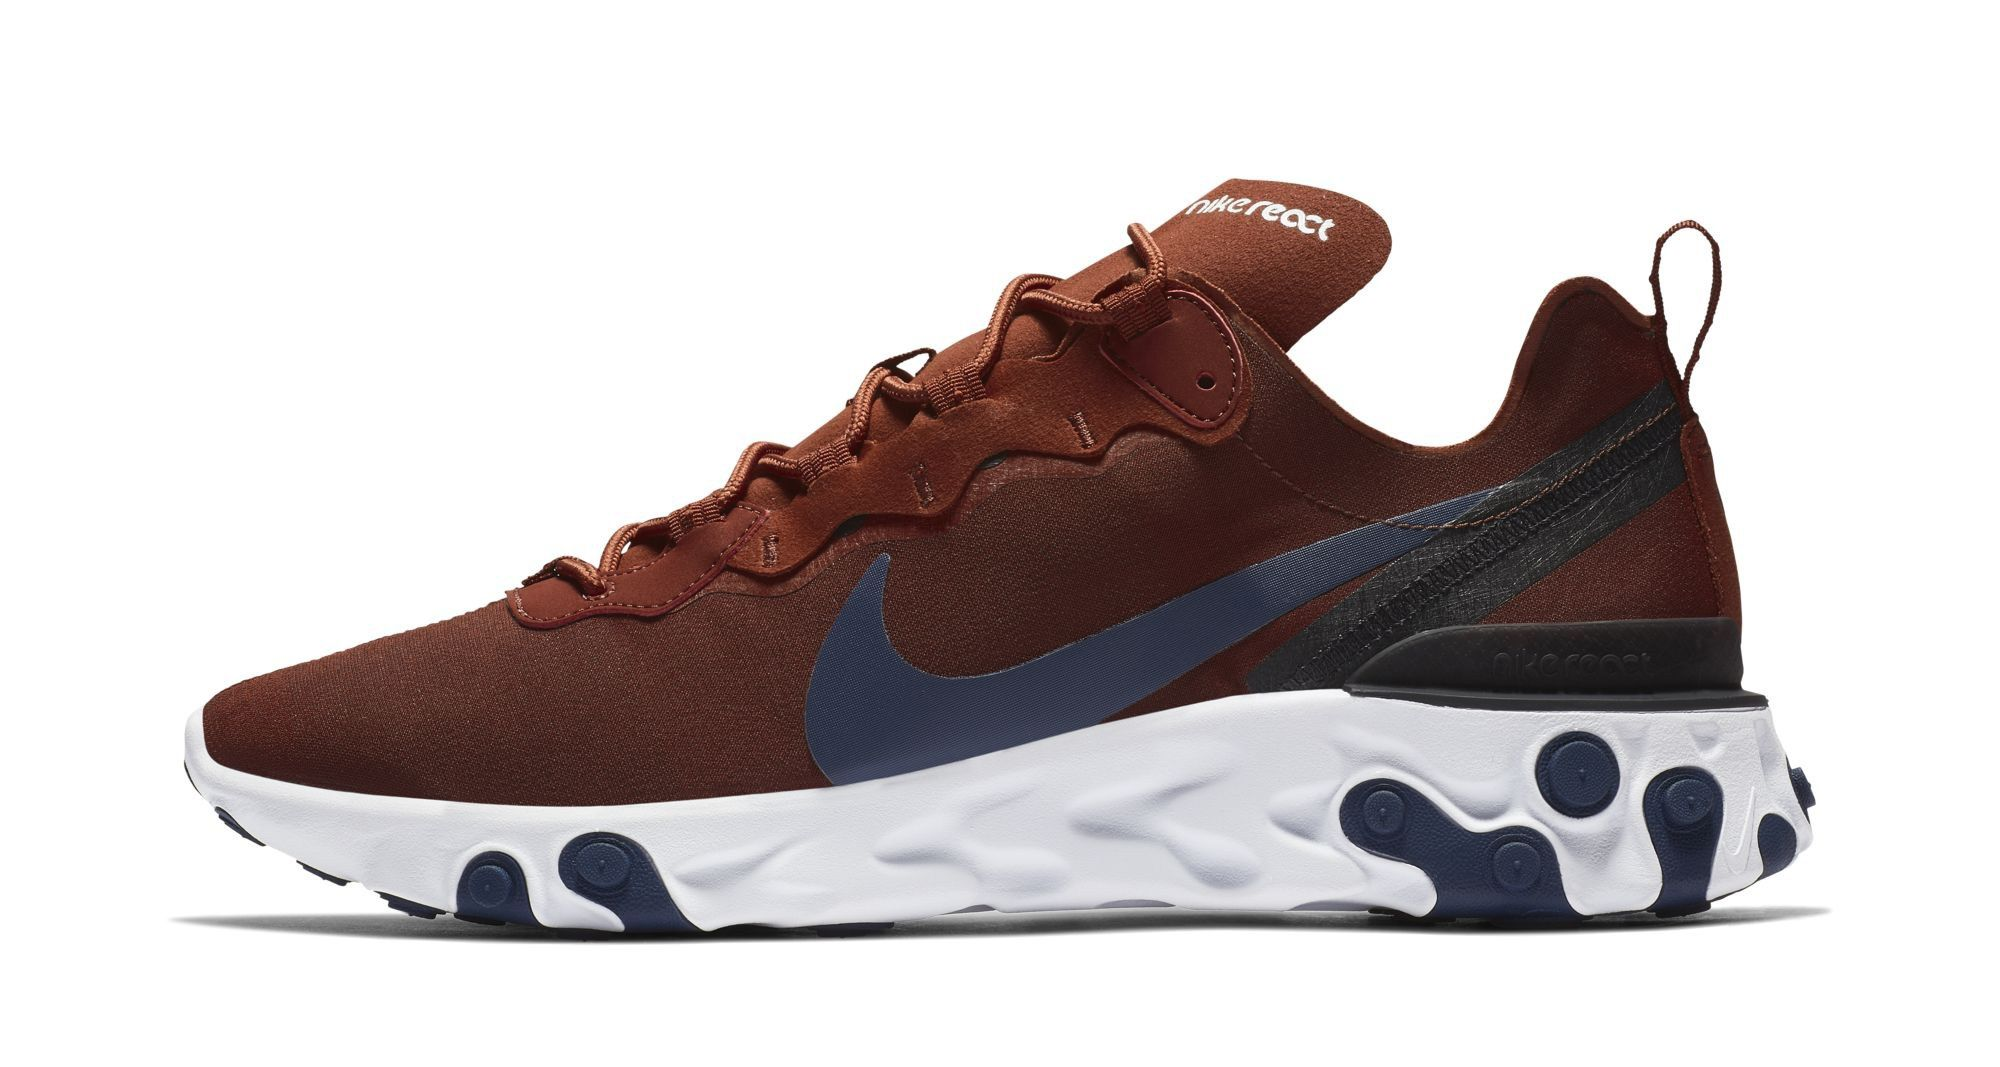 45465315a30de1 More Nike React Element 55 colorways are due out this fall. Take a first  look at the